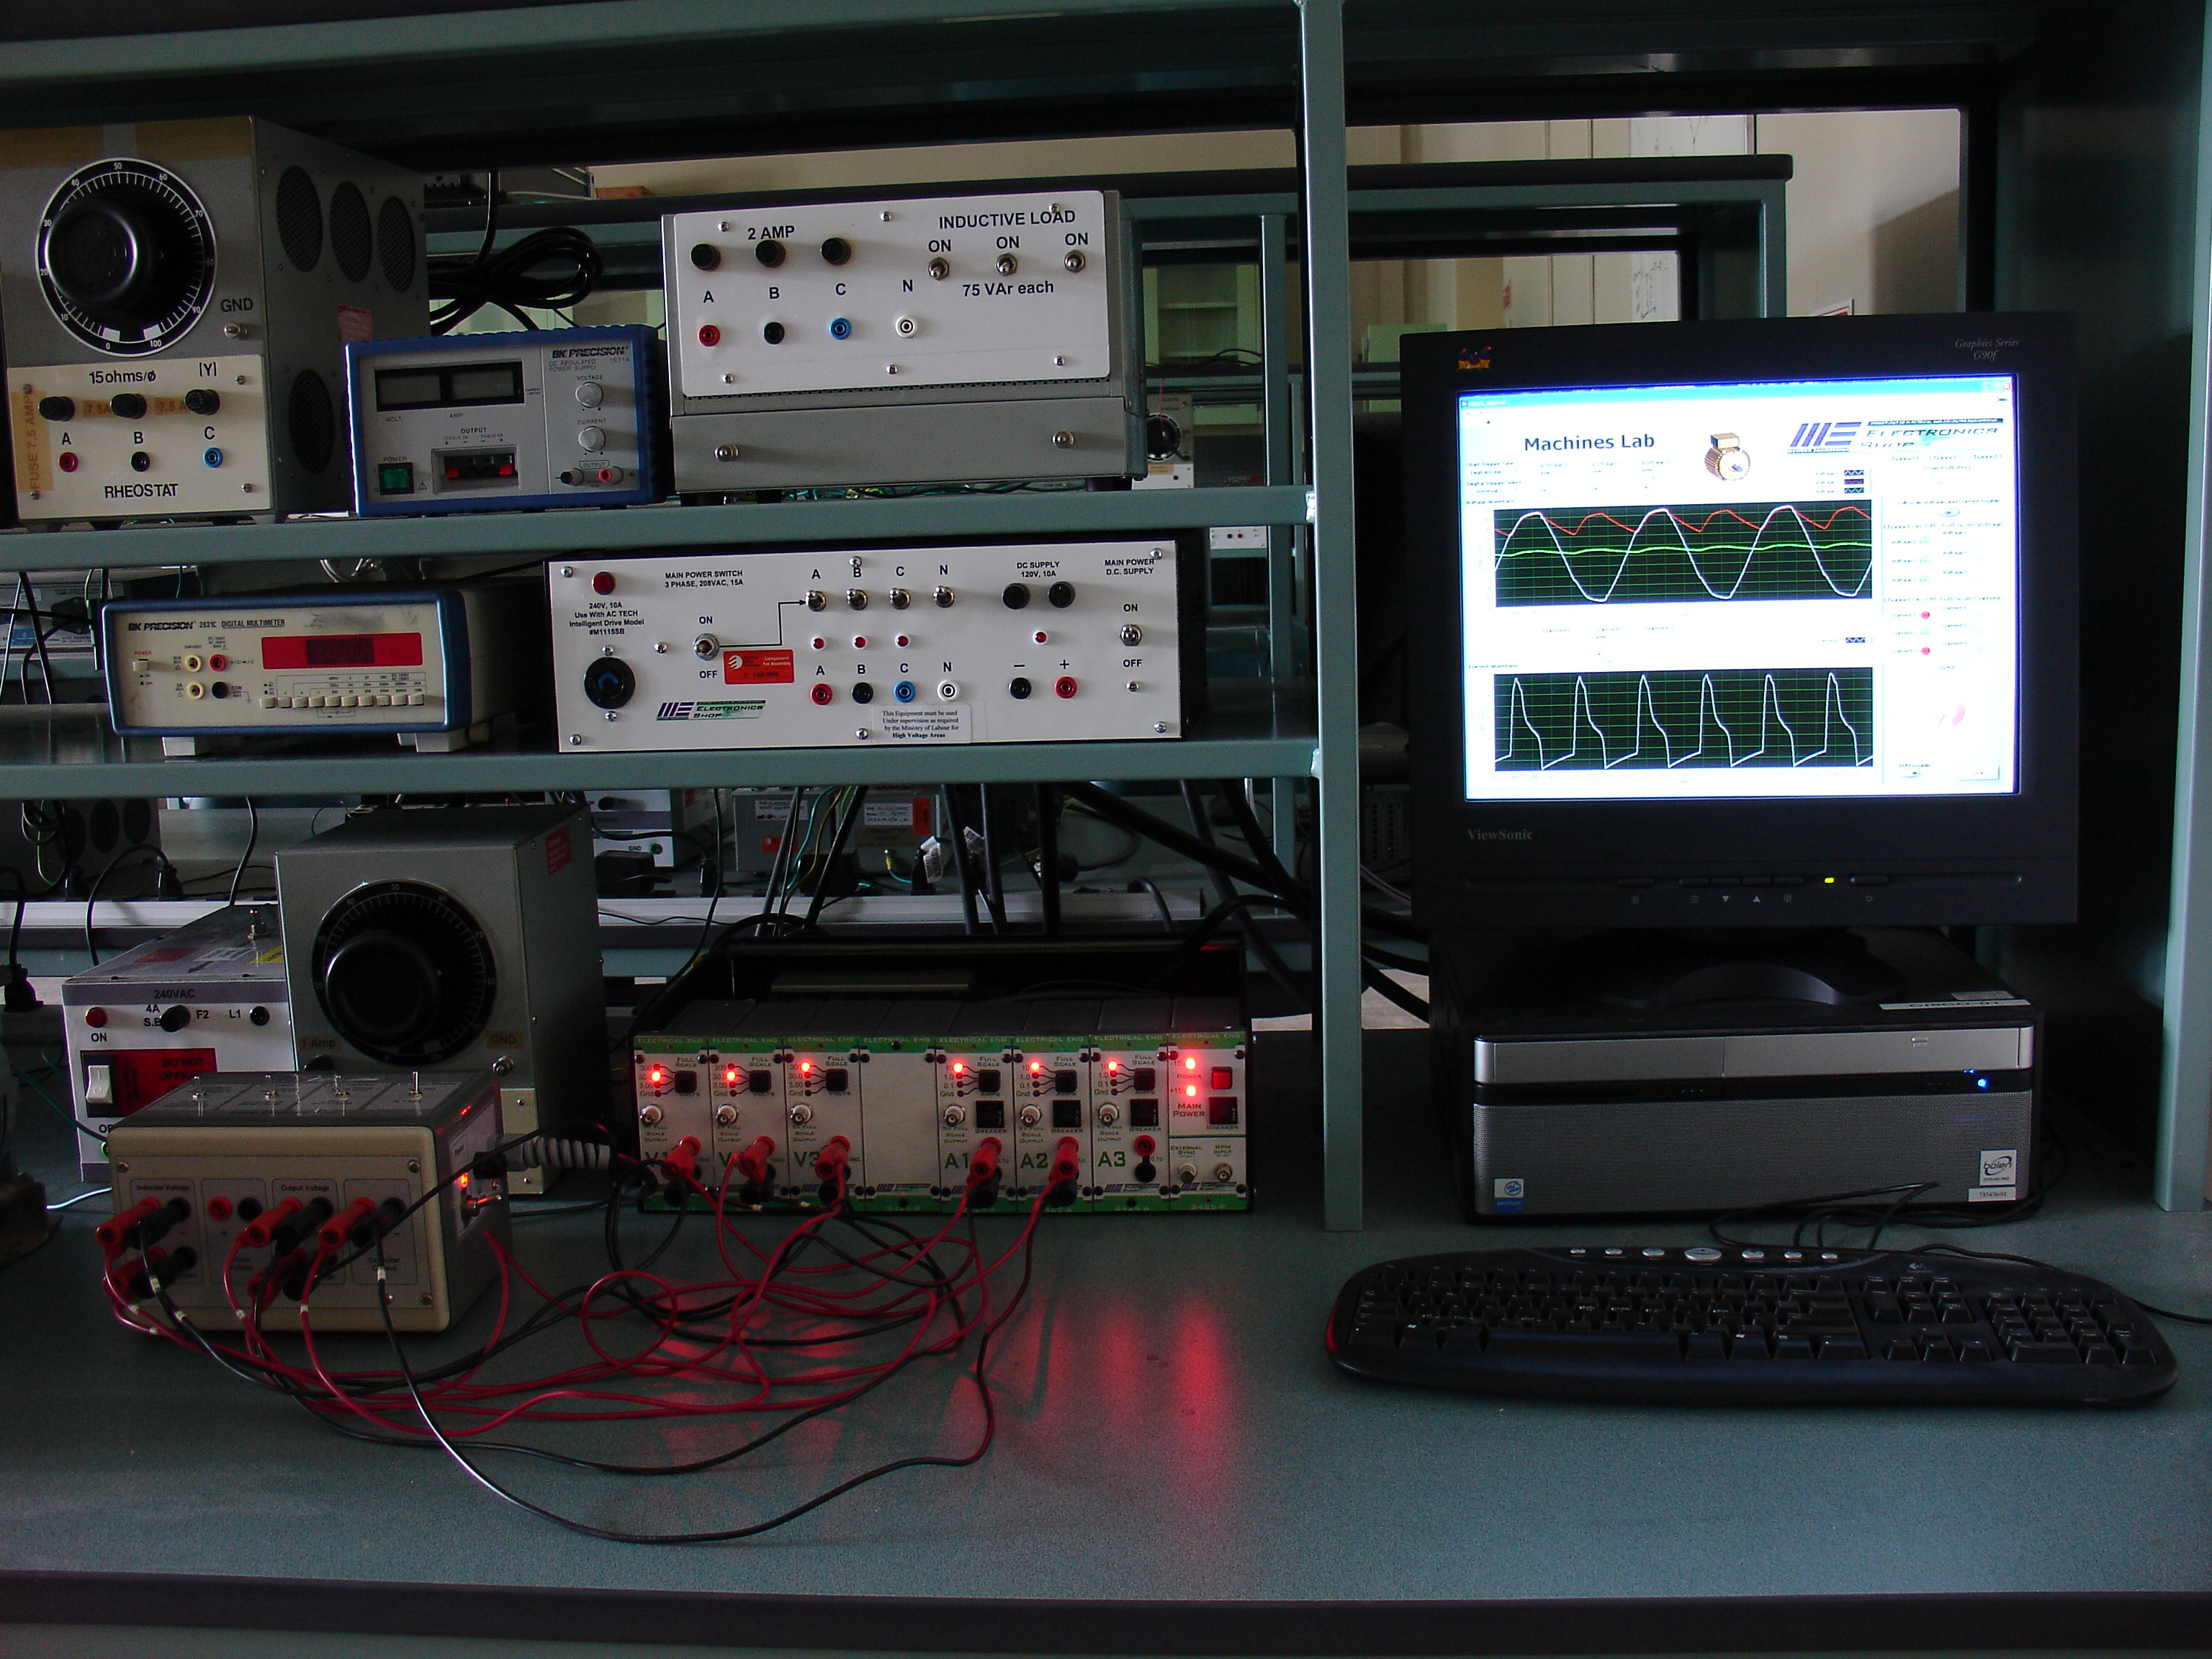 Electronics Shop Electrical Technology All About Eng Laboratory Equipment